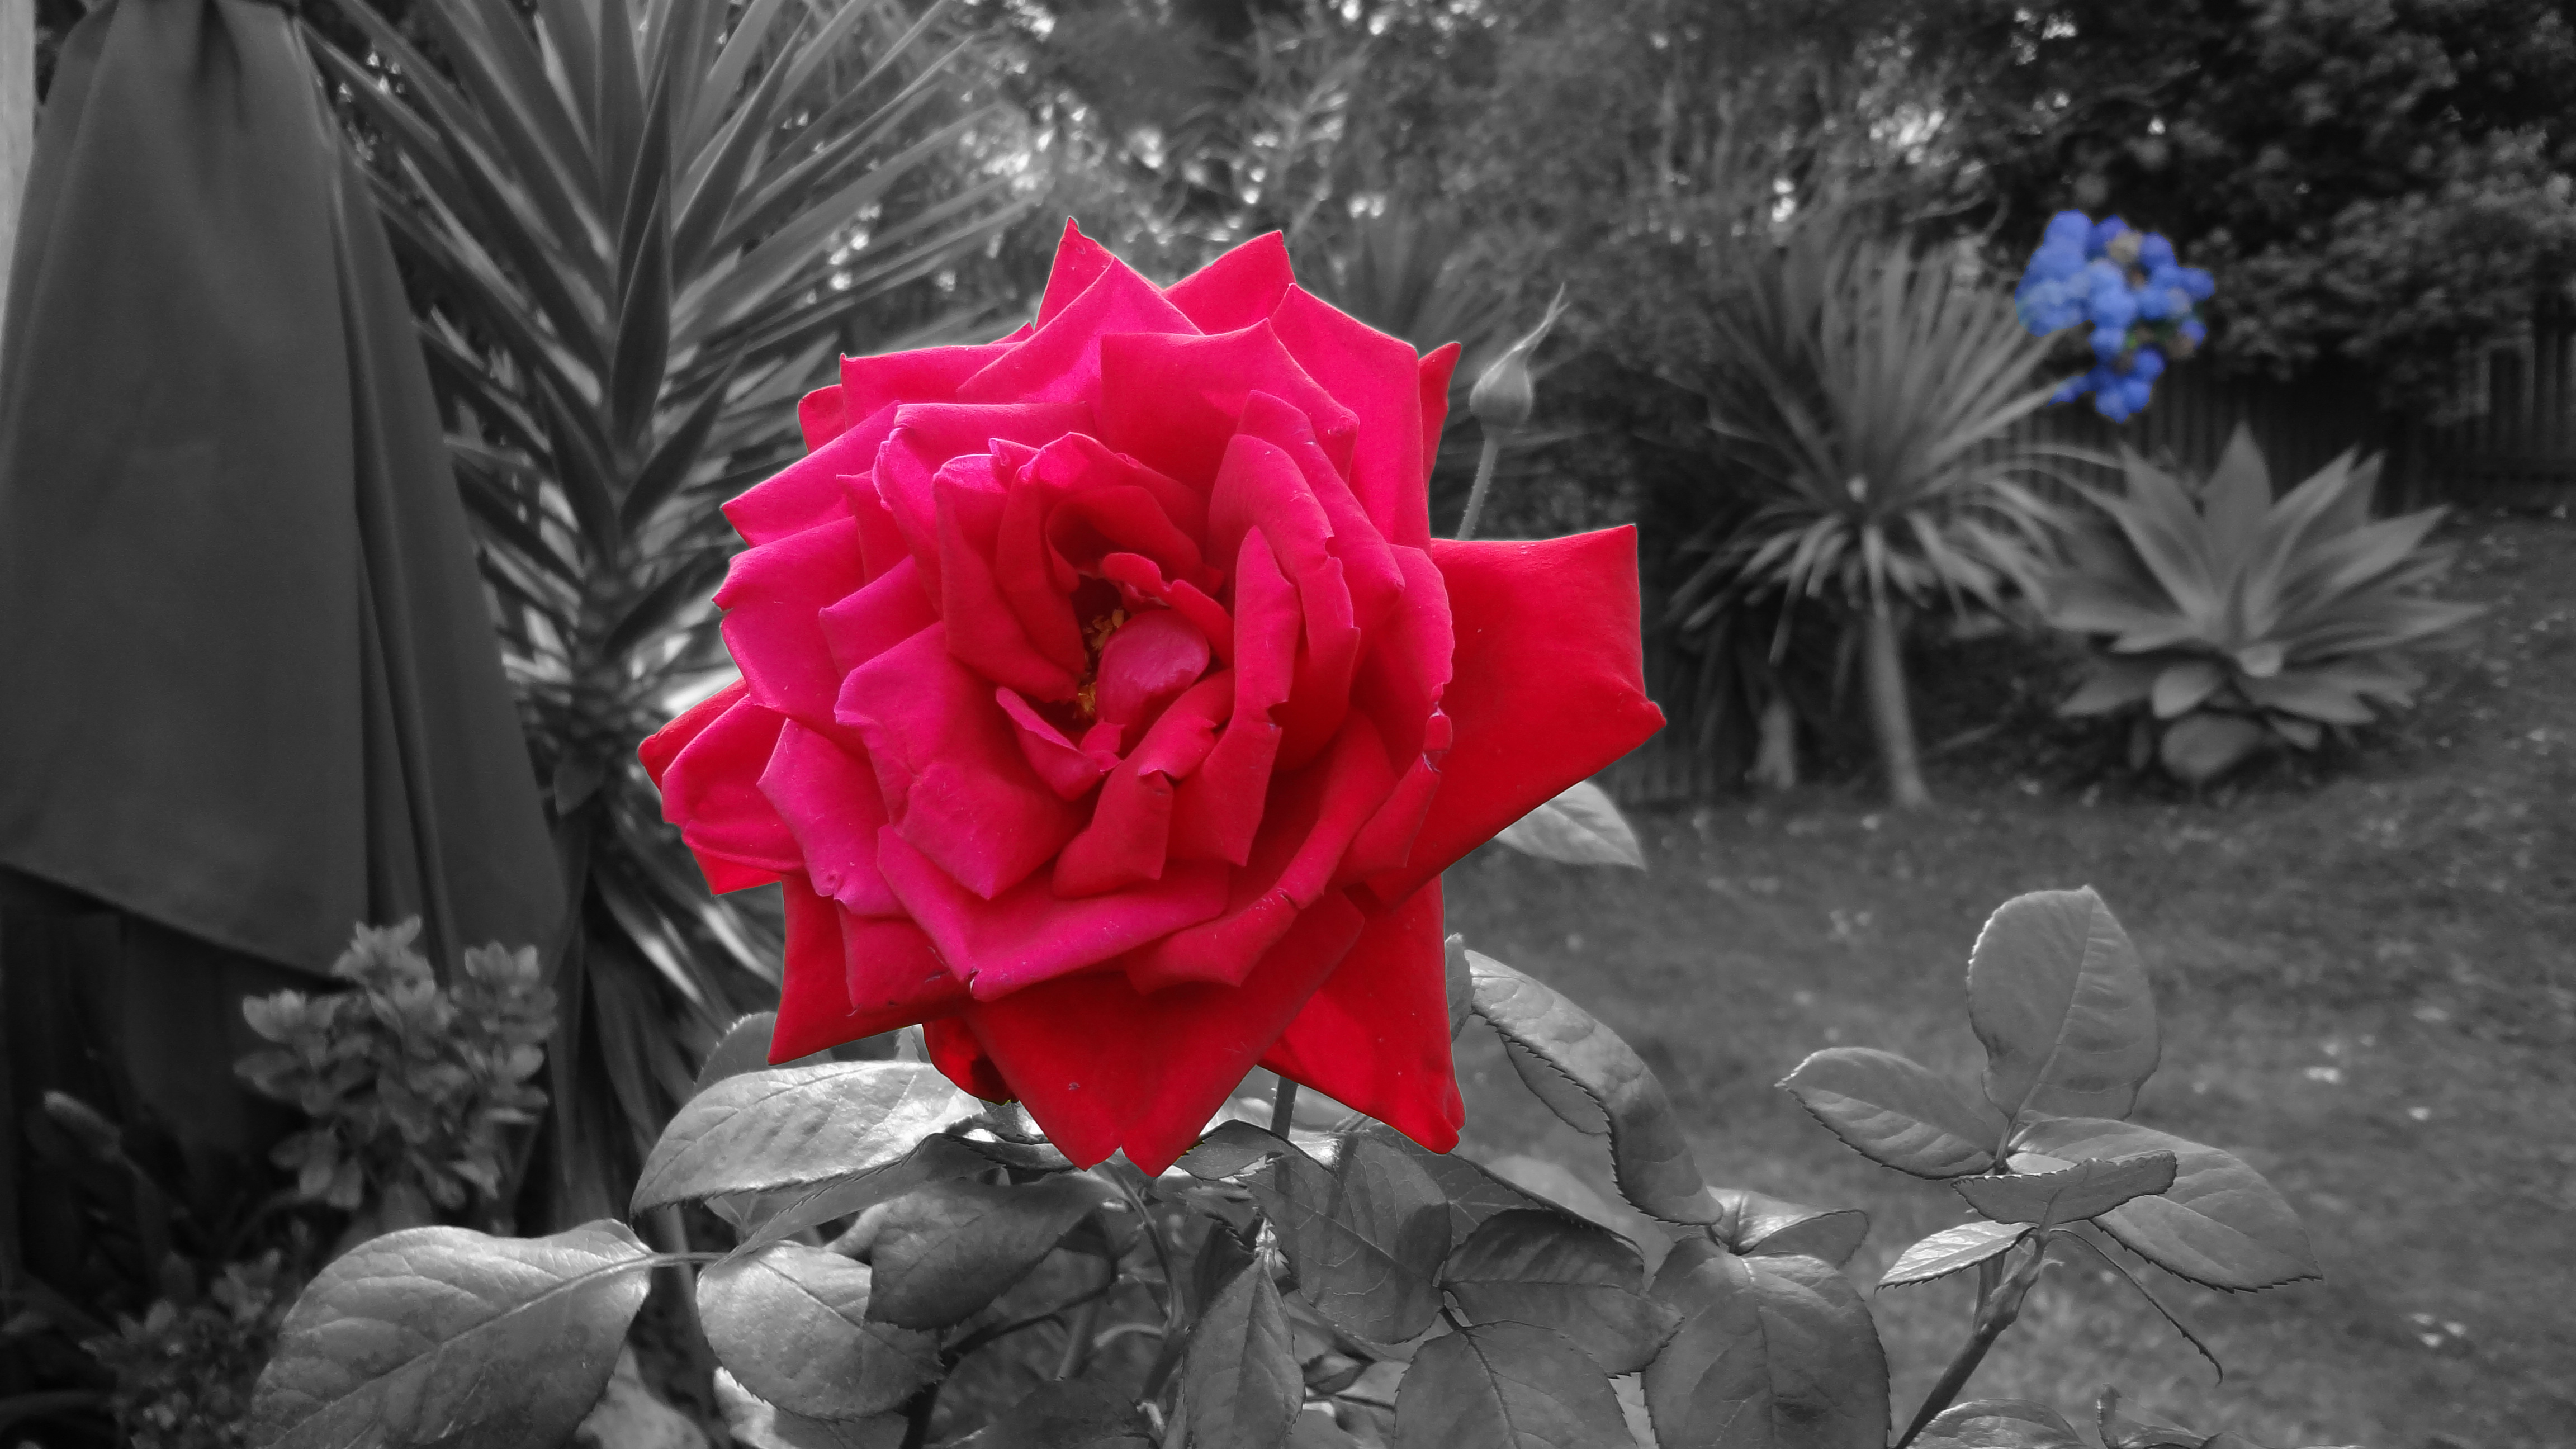 Black / White / Color Rose / Flowers by LeroyDaNinja on ...